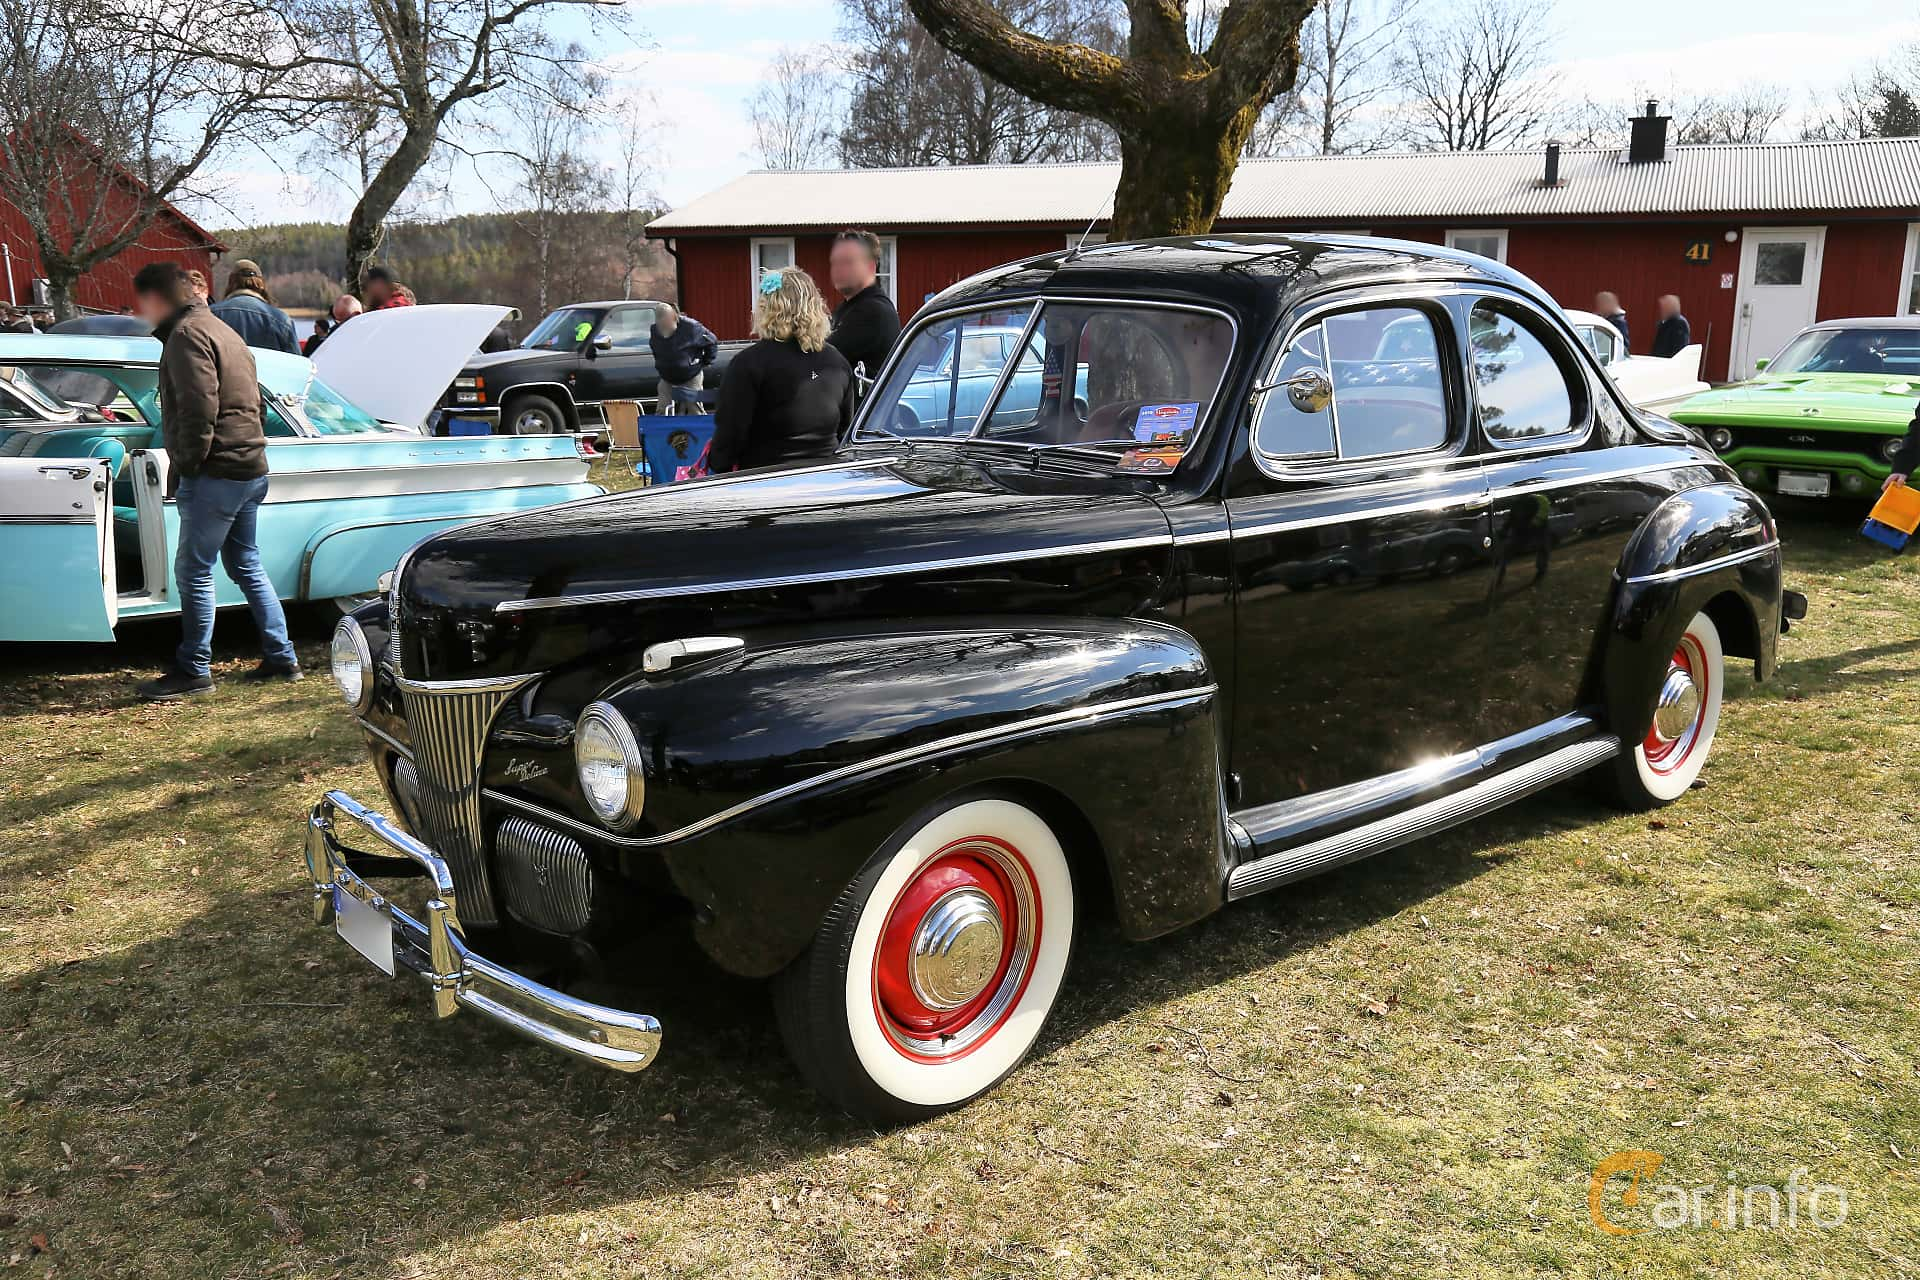 Ford Super Deluxe Coupé 3.6 V8 Manual, 91hp, 1941 at Uddevalla Veteranbilsmarknad Backamo, Ljungsk 2019